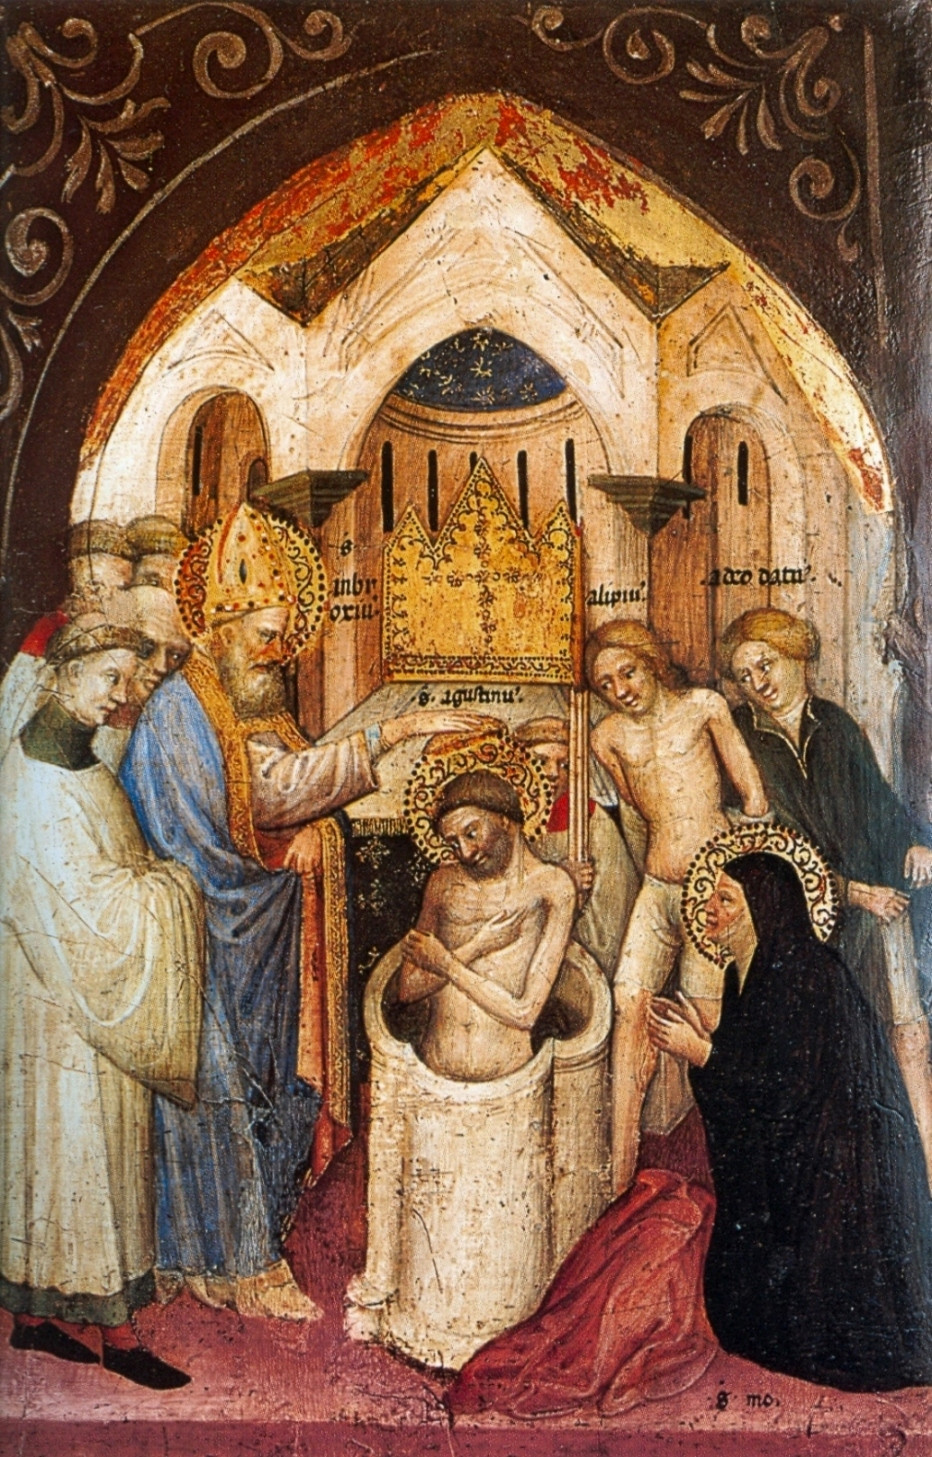 Saint Augustine Baptized by Saint Ambrose, by Nicolo di Pietro (scan) [Public domain], via Wikimedia Commons